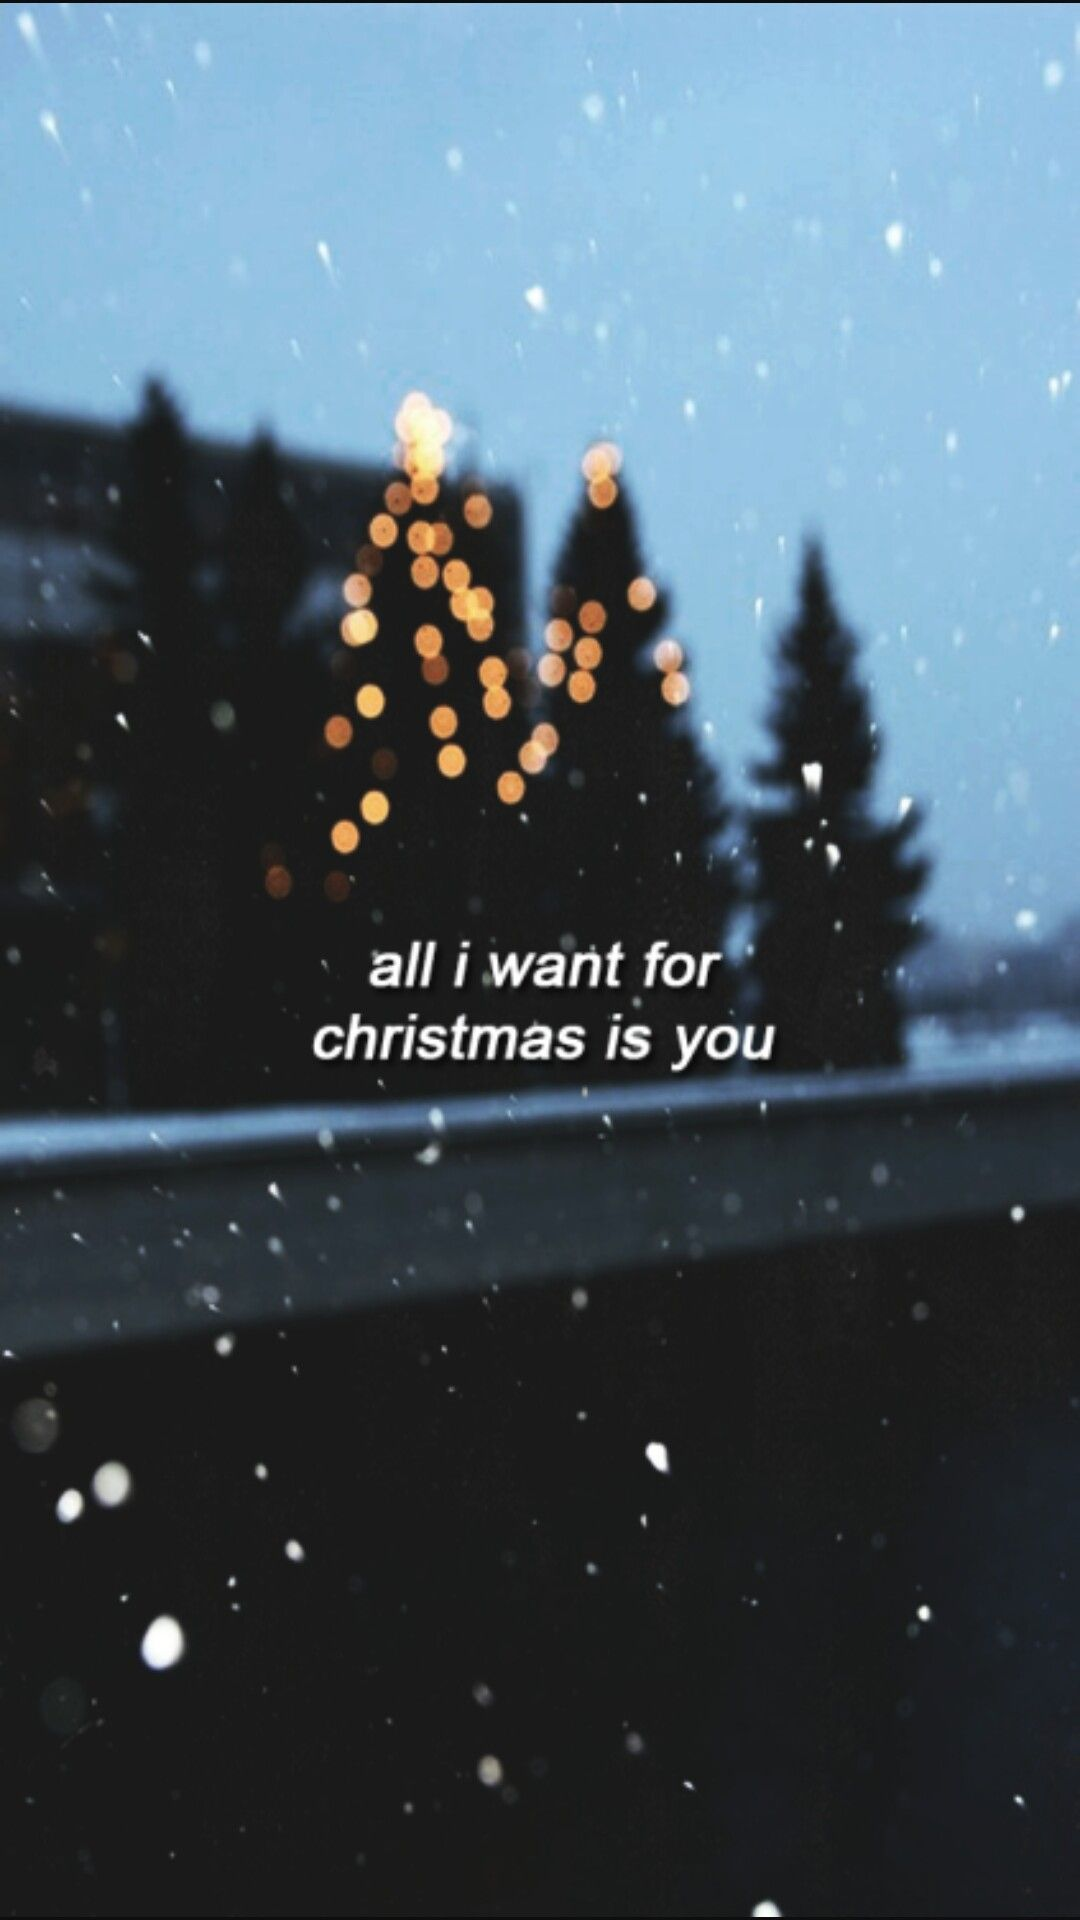 I Don T Want A Lot For Christmas All I Want For Christmas Is You I Wanna See Y Wallpaper Iphone Christmas Cute Christmas Wallpaper Christmas Phone Wallpaper